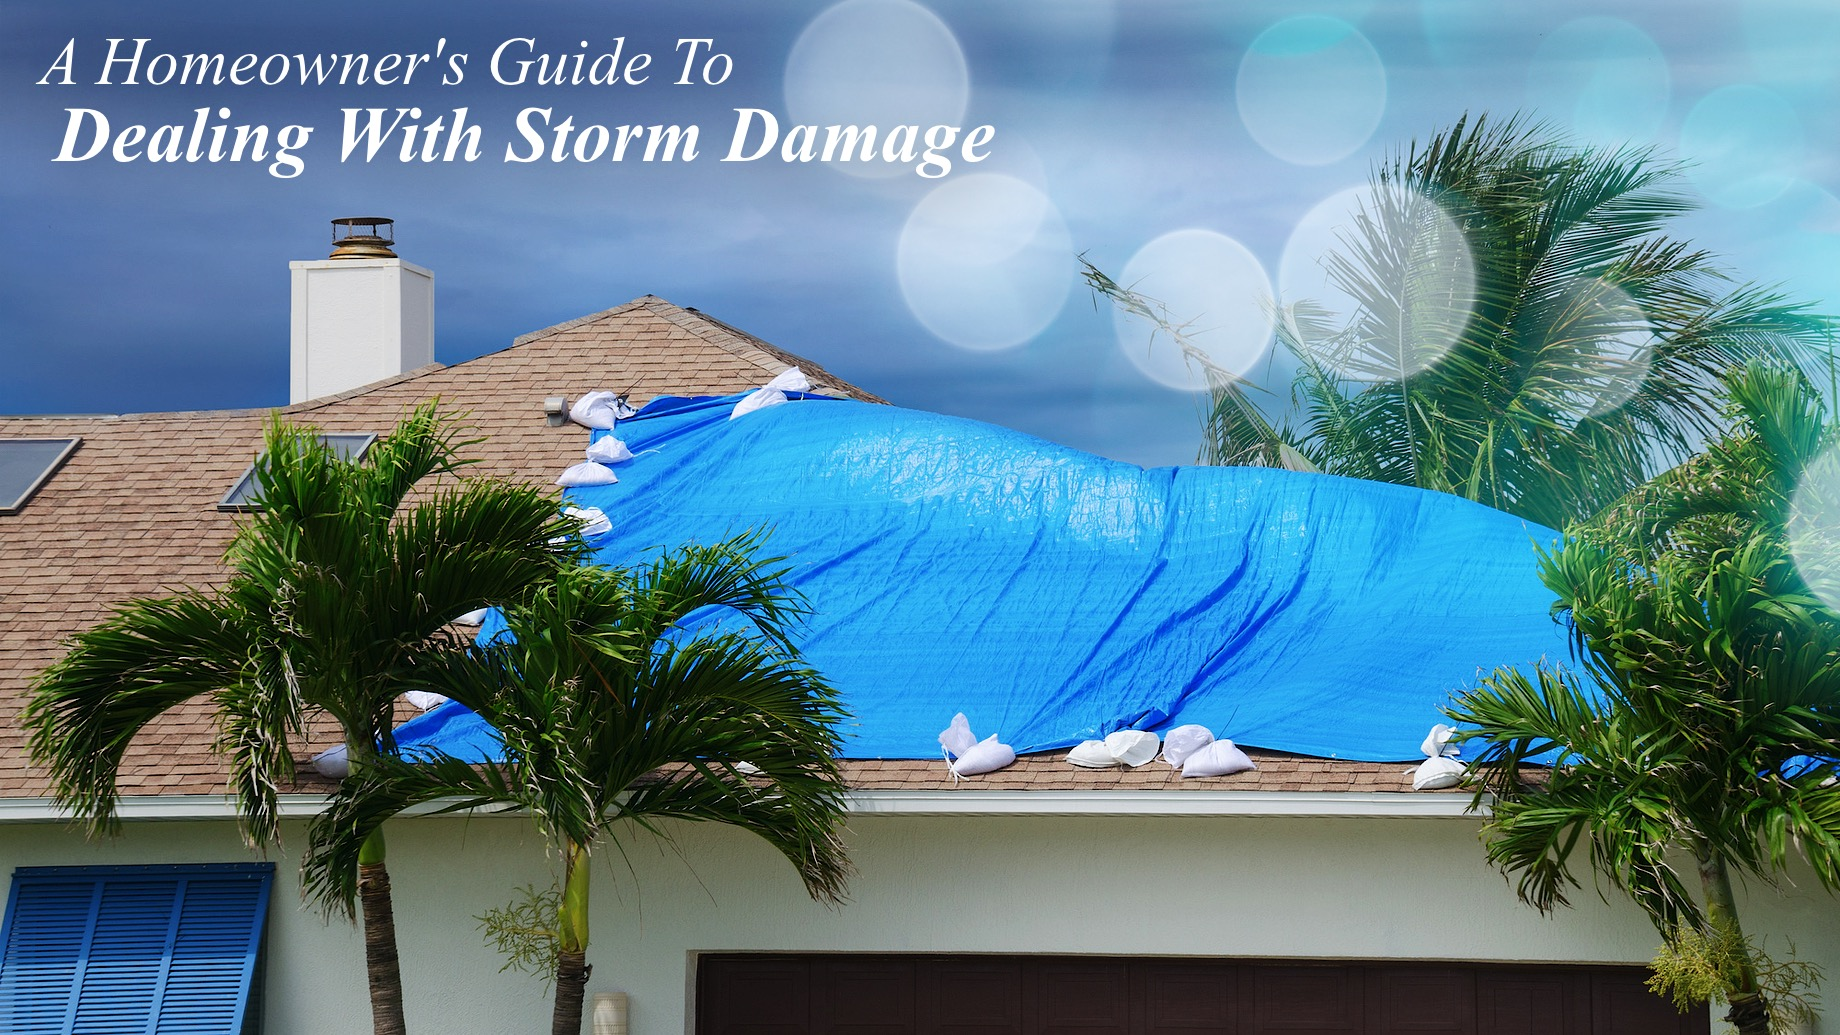 A Homeowner's Guide To Dealing With Storm Damage